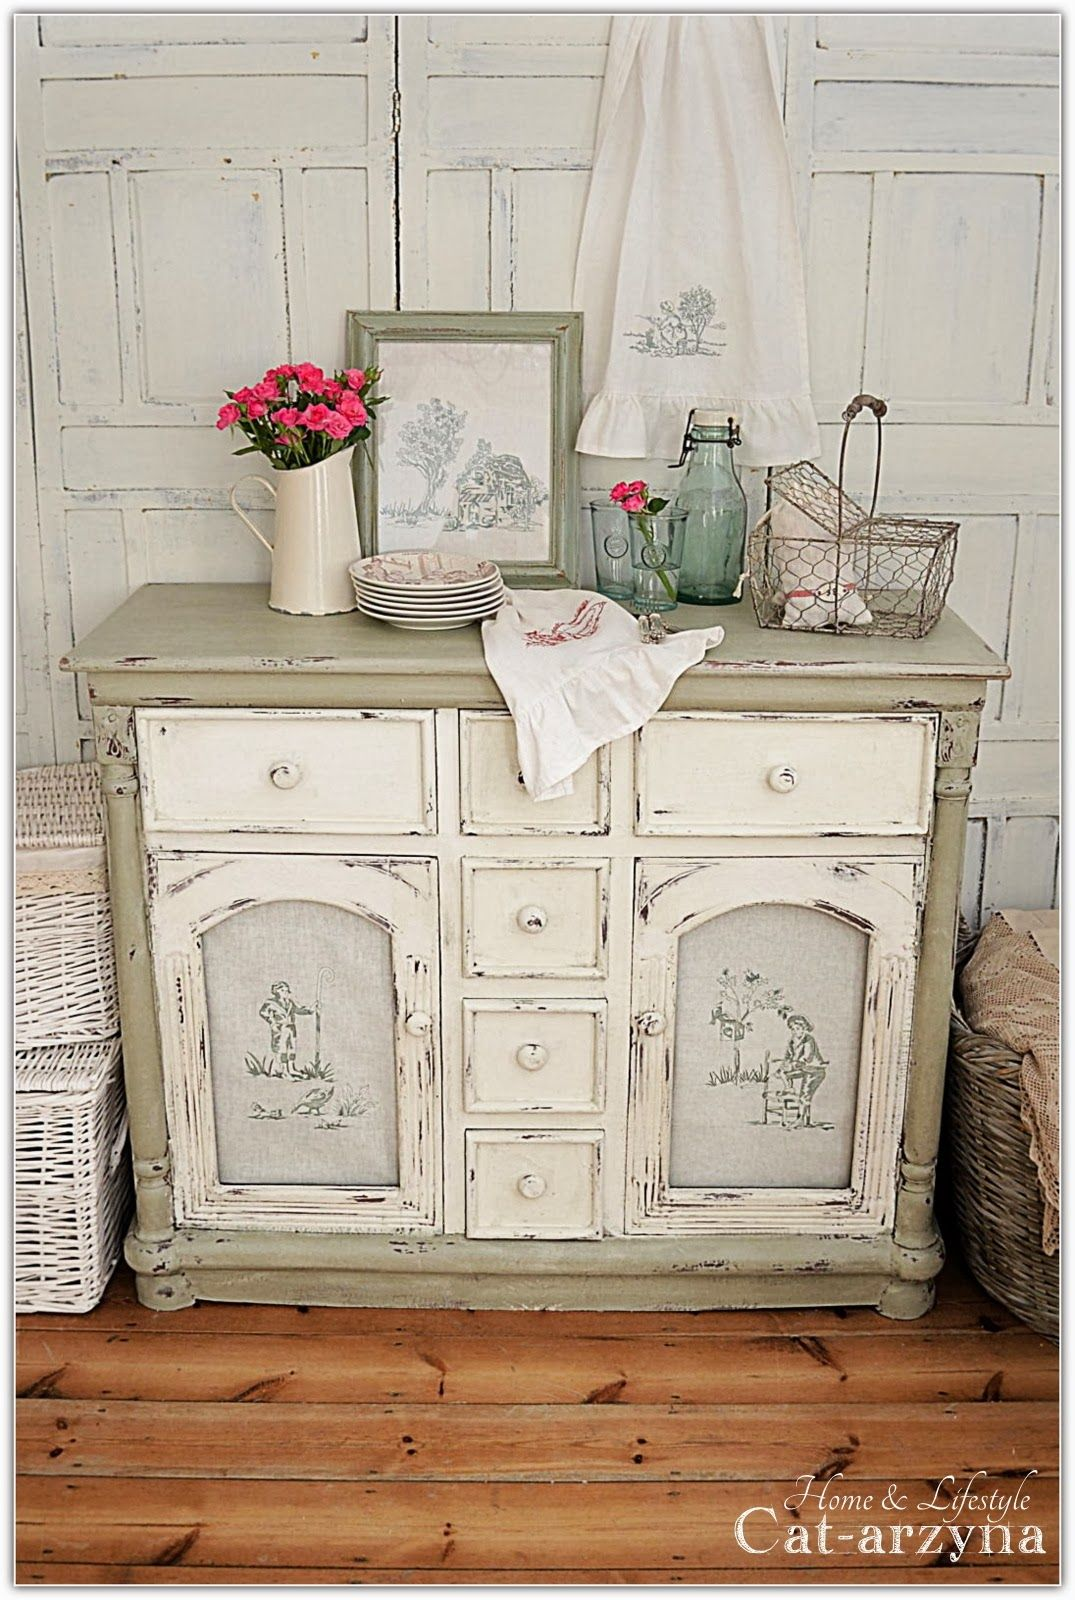 Muebles Patinados Cat Arzyna French Country Muebles Pinterest Muebles